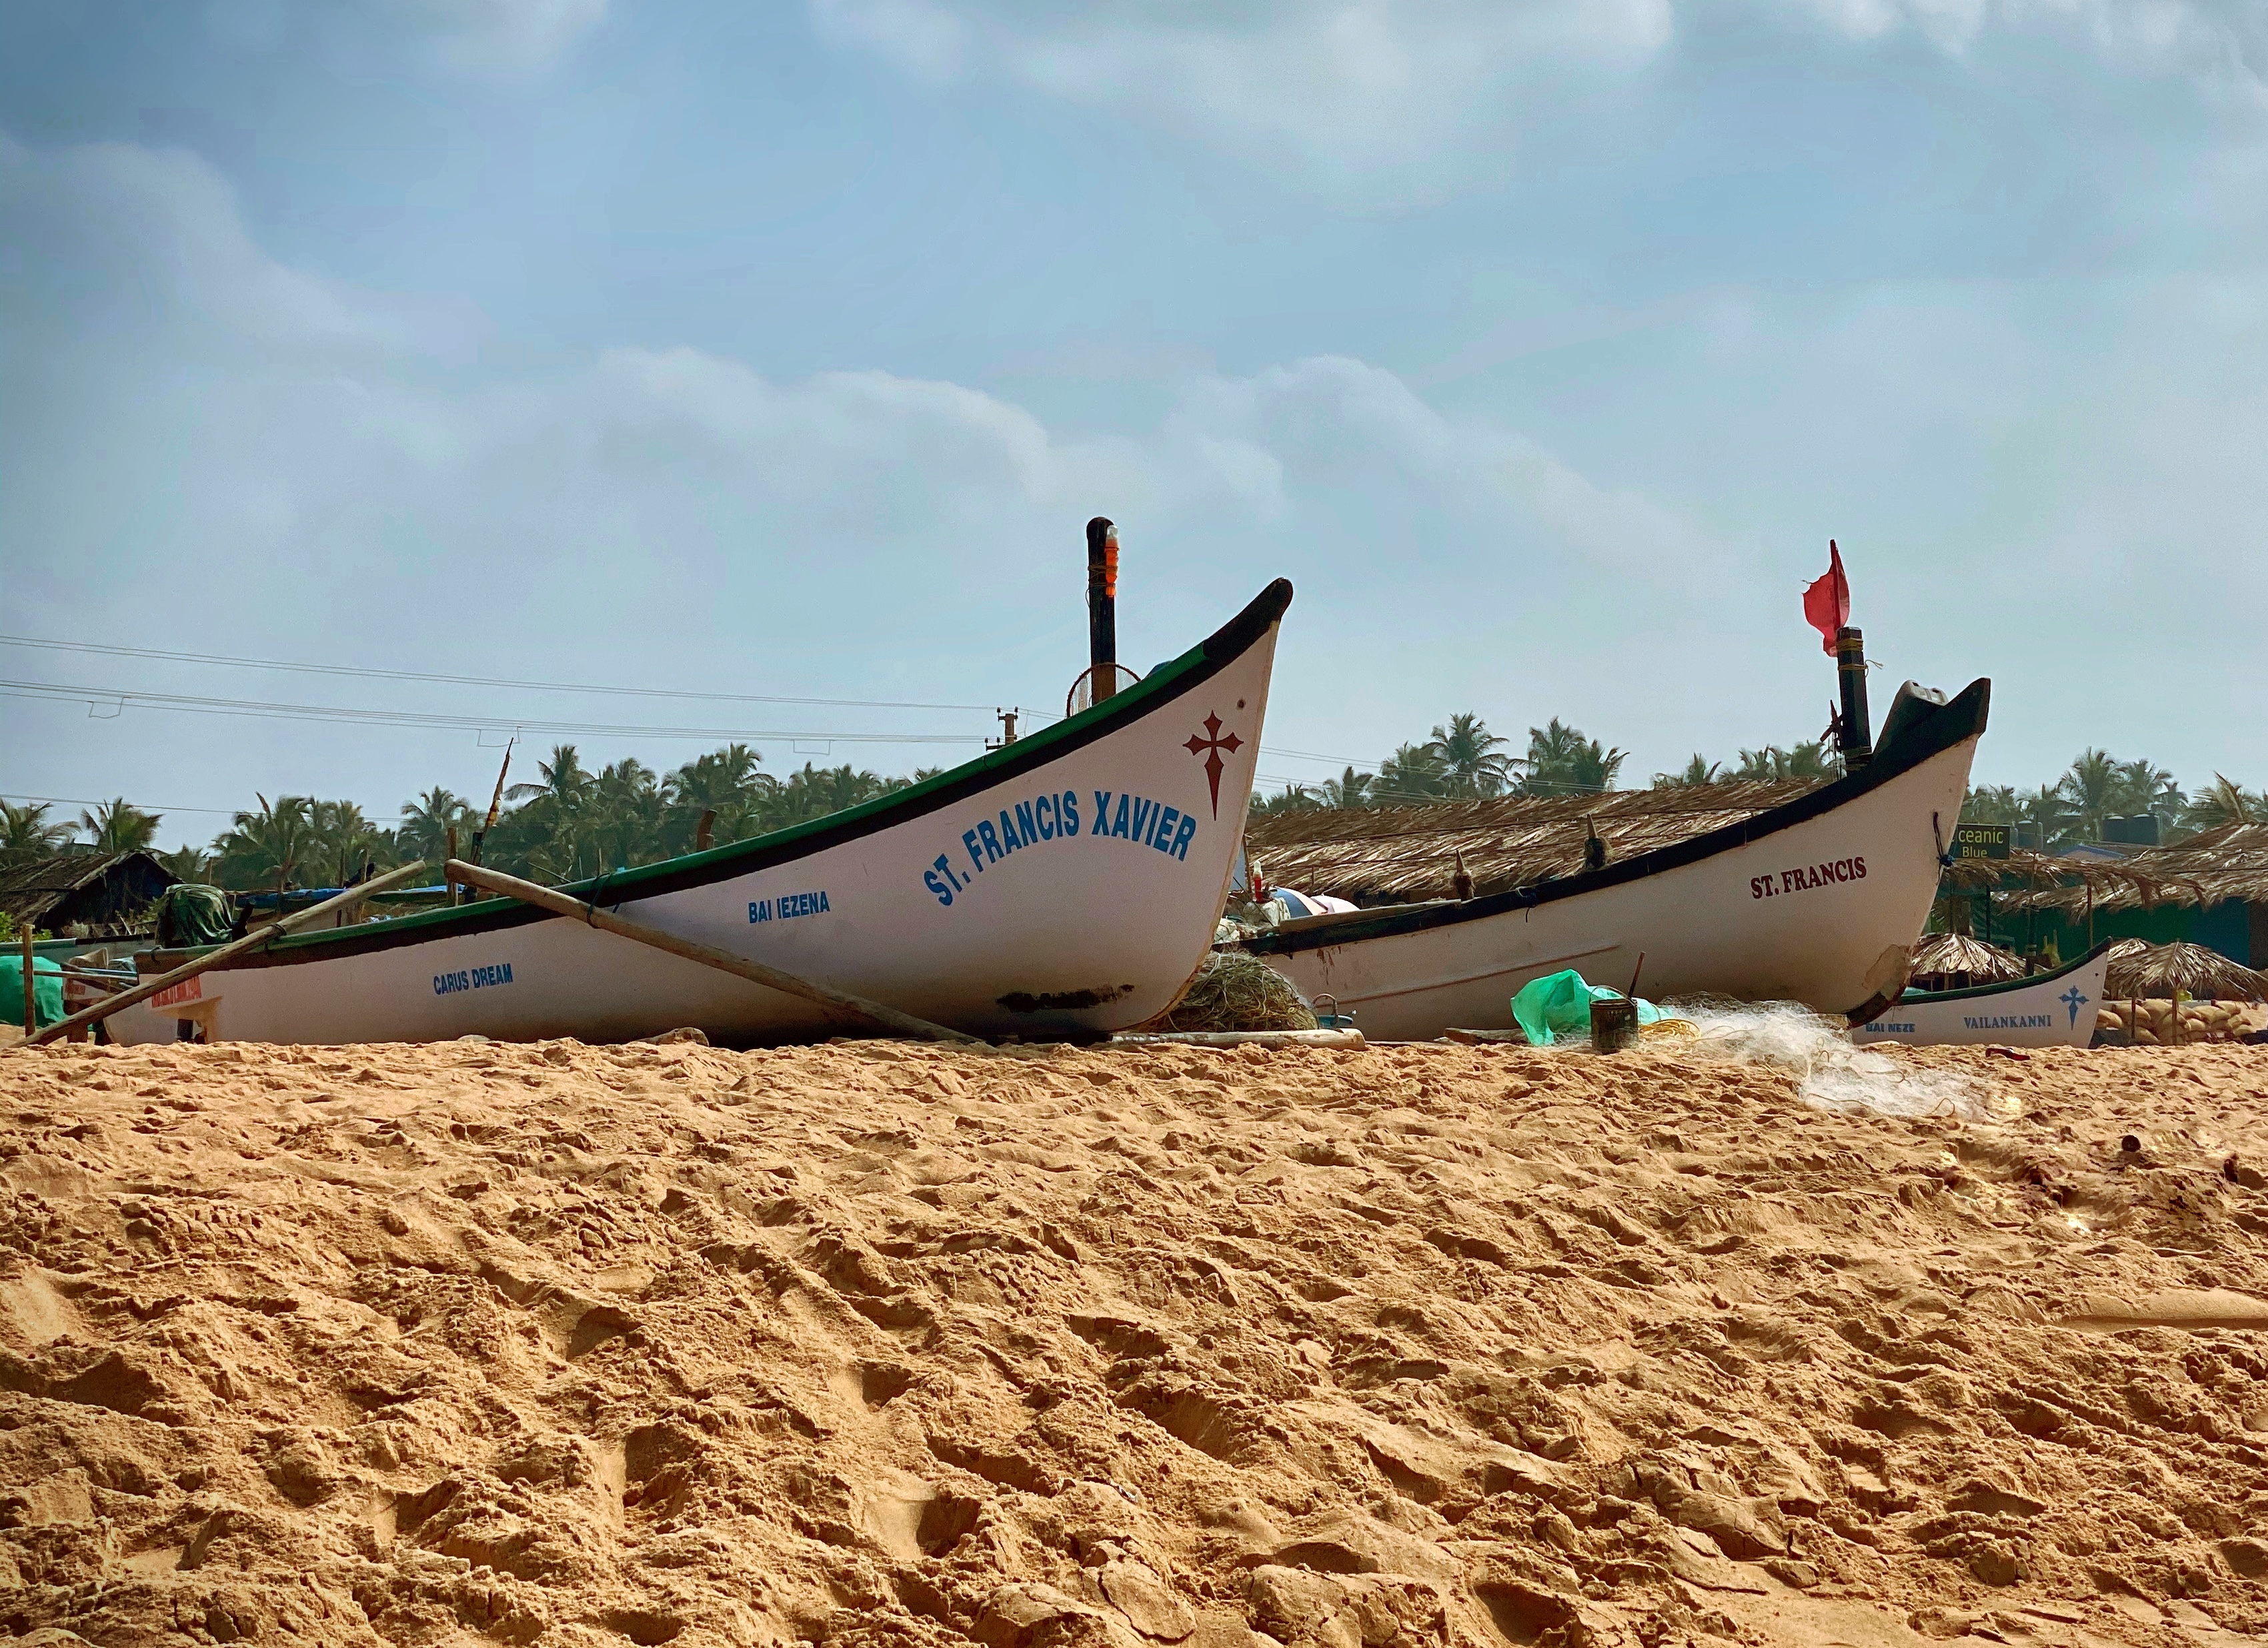 Holiday in India – without a tour operator (Pt 3 – Goa)